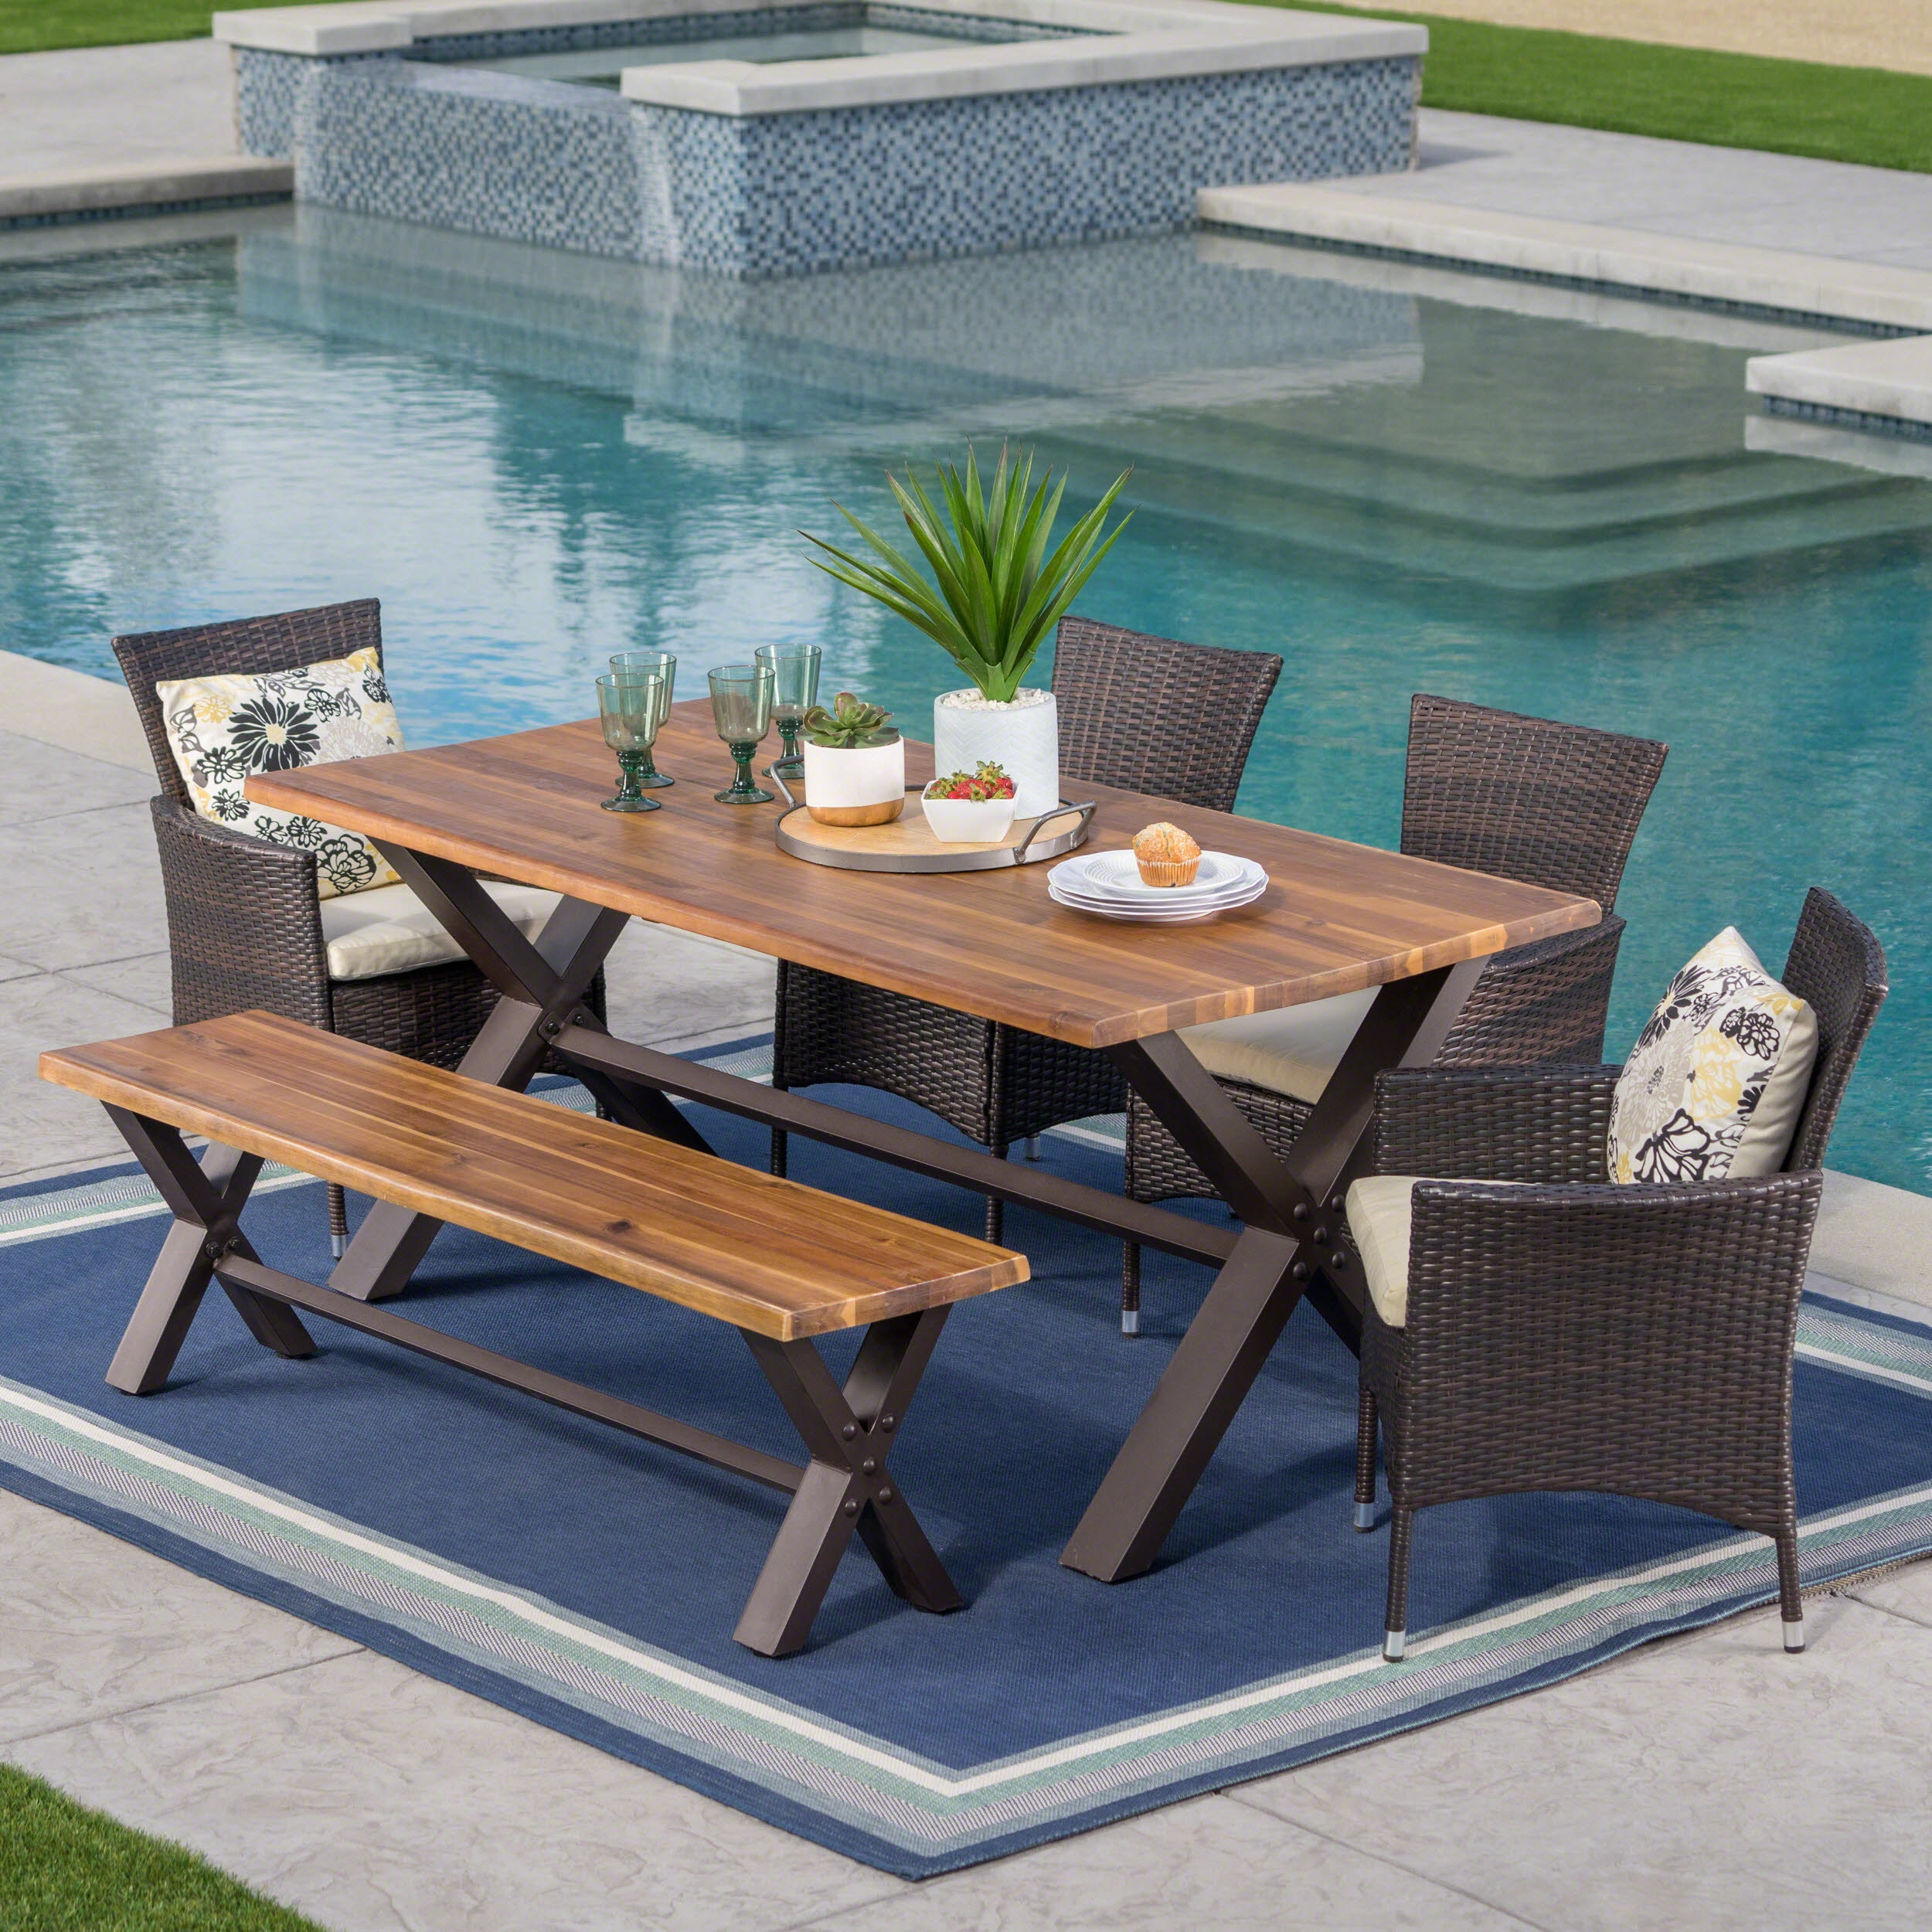 Table Lounge Garden Furniture Couch Rattan Png Download 1500 Buy Outdoor Dining Sets Online At Overstock Our Best Patio